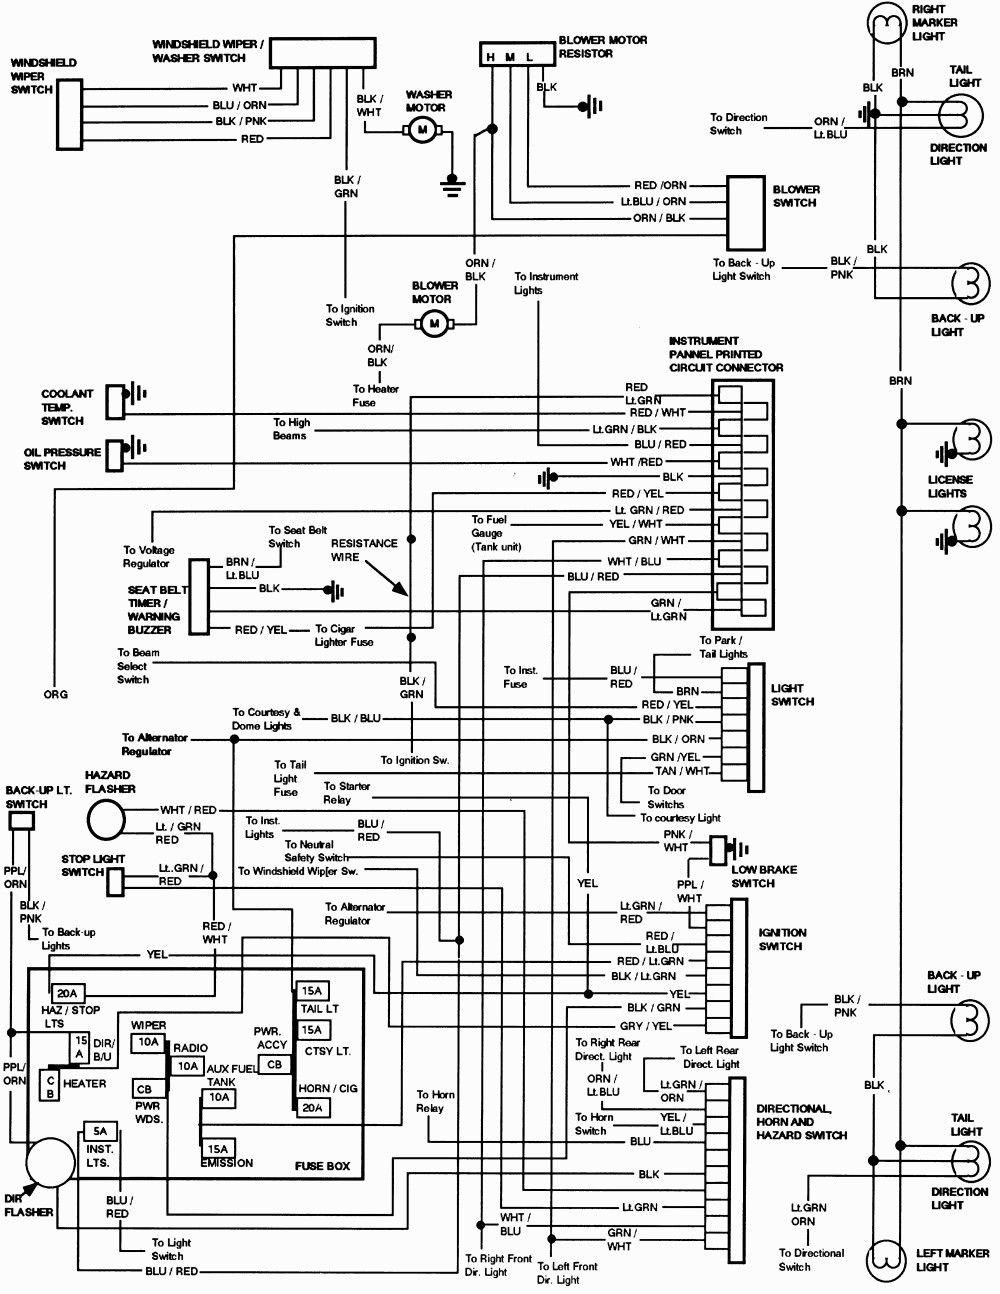 L Glow Plug Harness Wiring Diagram on boss audio wiring diagram, ford glow plug diagram, 6.0 powerstroke wiring harness diagram, 7.3l head diagram, 1990 ford f-250 7.3 engine diagram, 1957 chevy wiring diagram, 2001 f250 glow plug diagram, polaris wiring diagram, kubota voltage regulator wiring diagram, diesel engine glow plug diagram, volvo penta alternator wiring diagram, kubota tractor radio wiring diagram, 1979 300d w115 glow plug diagram, 6.0 powerstroke heater diagram, car stereo amp wiring diagram, 6.0 powerstroke glow plug diagram, 7.3 powerstroke injector harness diagram, 7.3l glow plug relay, 1982 6 2 diesel glow control diagram, boss snow plow wiring diagram,